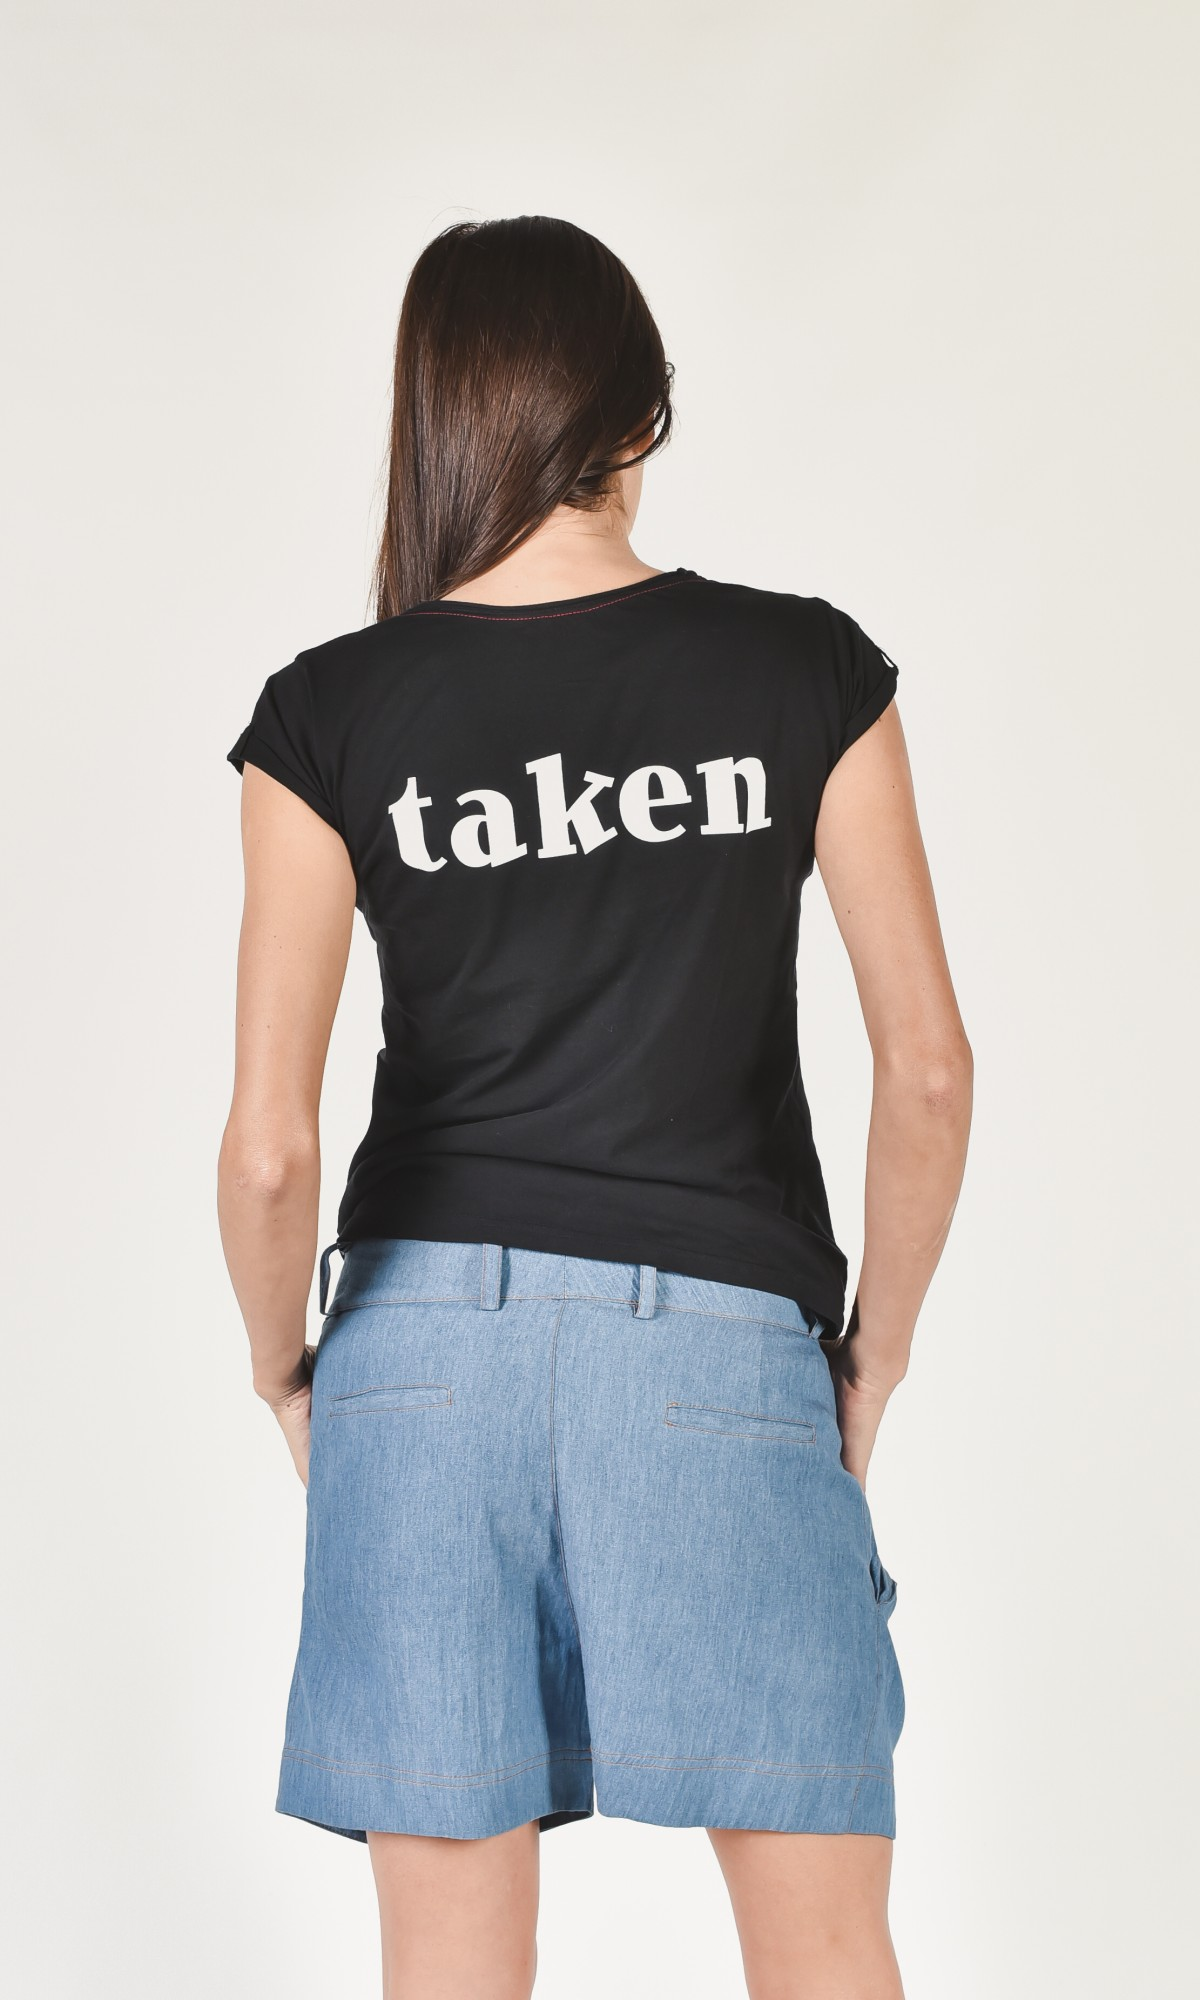 Printees - Taken Back Print T-shirt A224000420